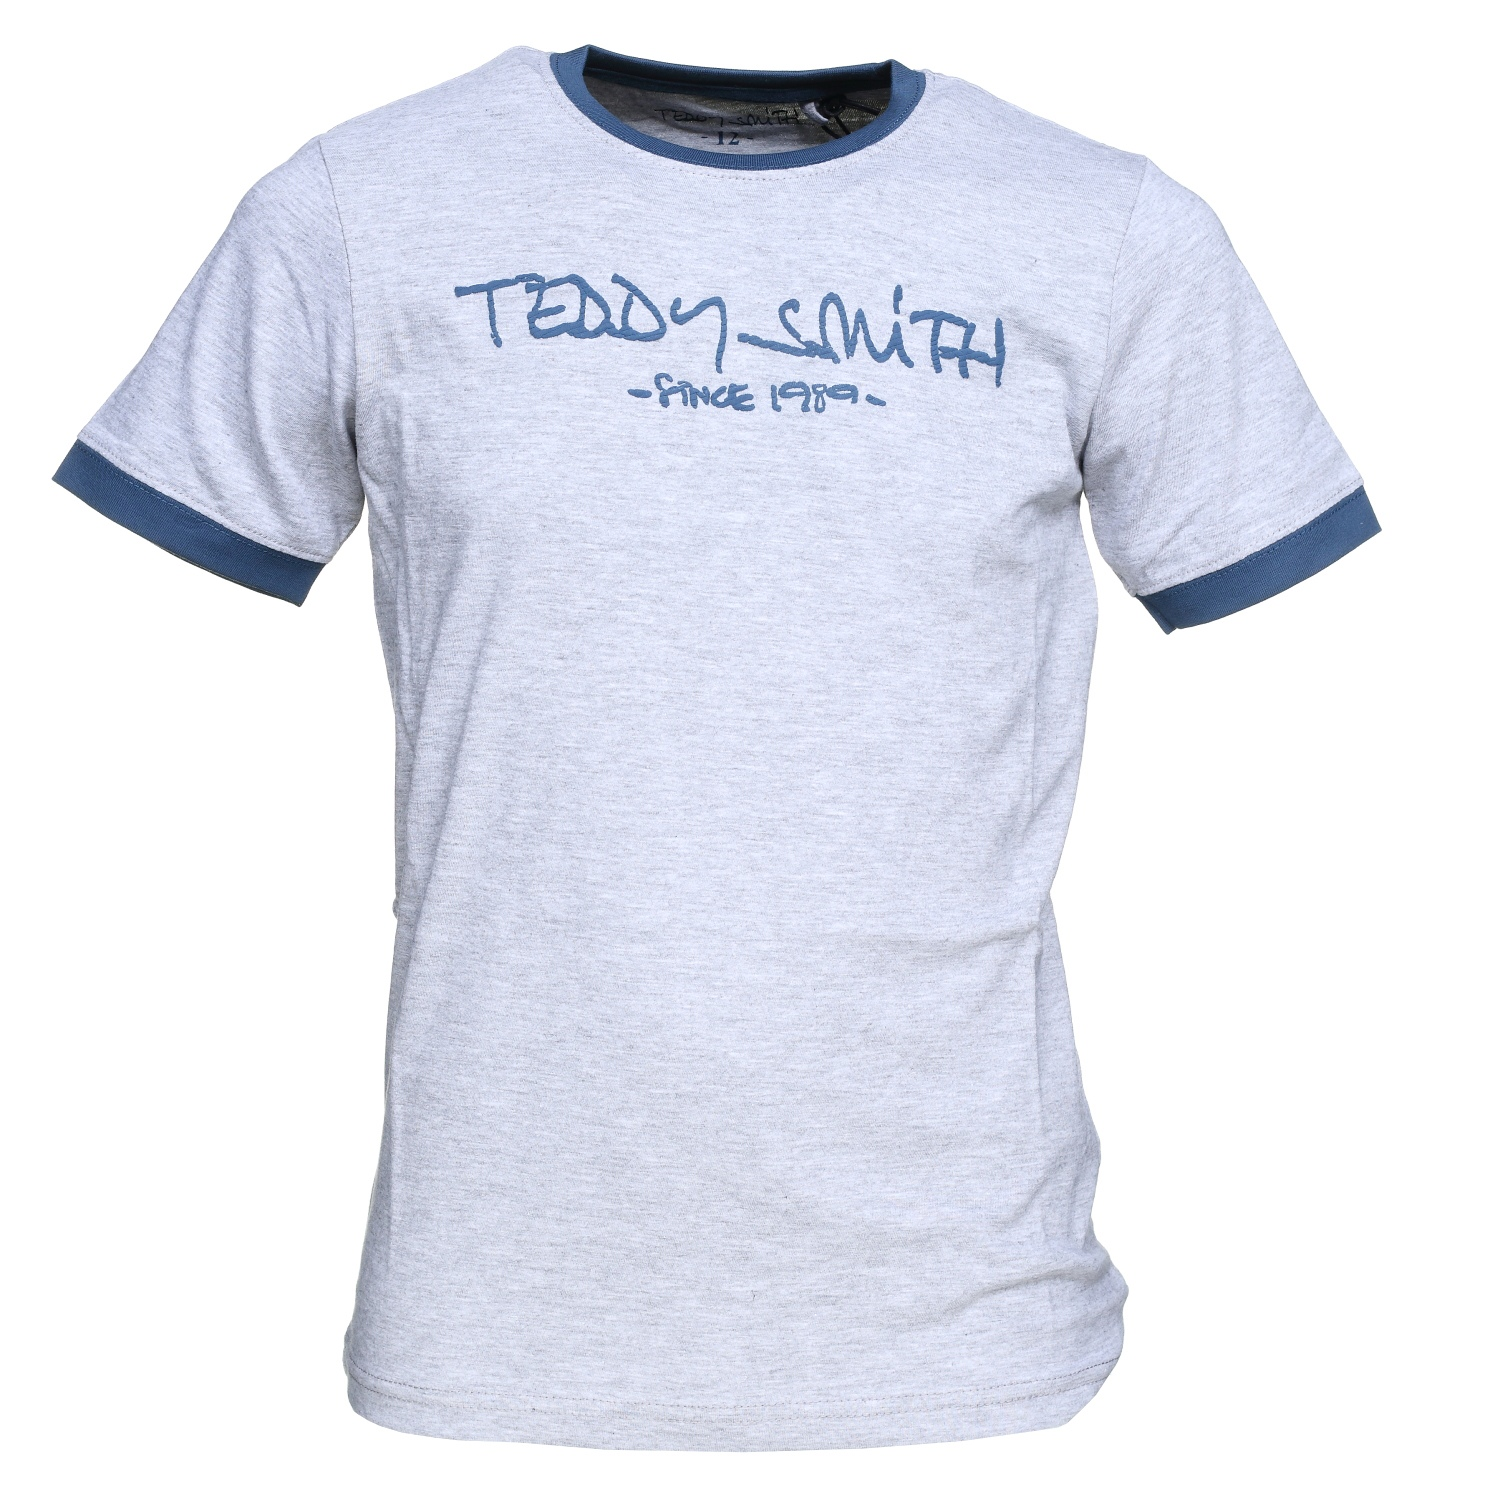 https://www.leadermode.com/139621/teddy-smith-ticlass3-mc-61002433d-181q-gris-indigo.jpg